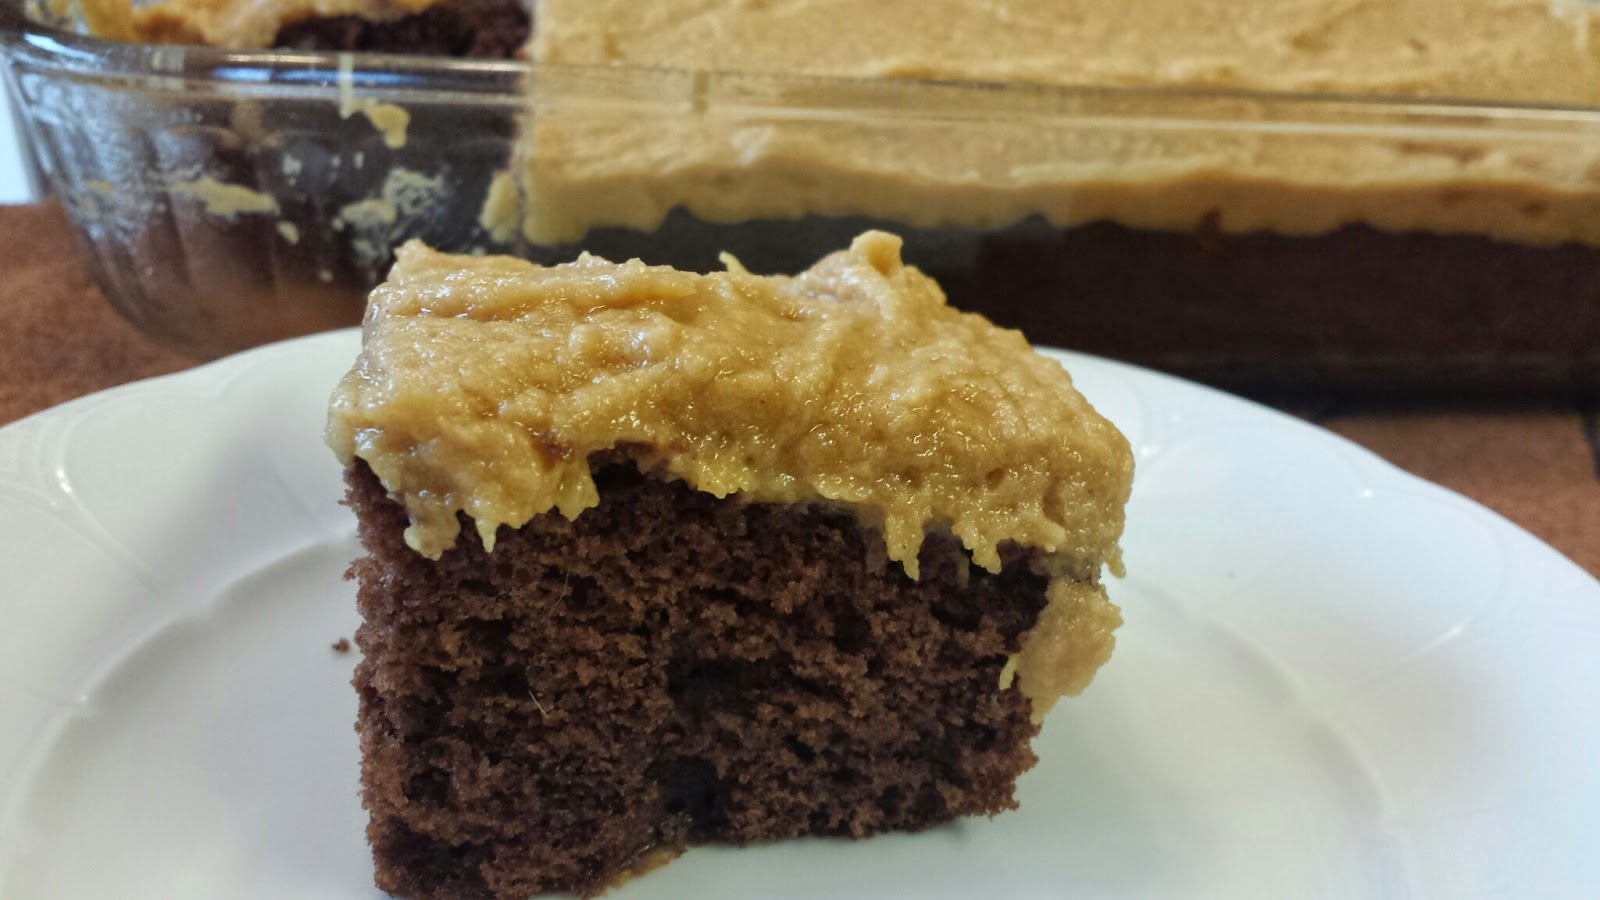 My Patchwork Quilt: CHOCOLATE SHEET CAKE with PEANUT BUTTER FROSTING